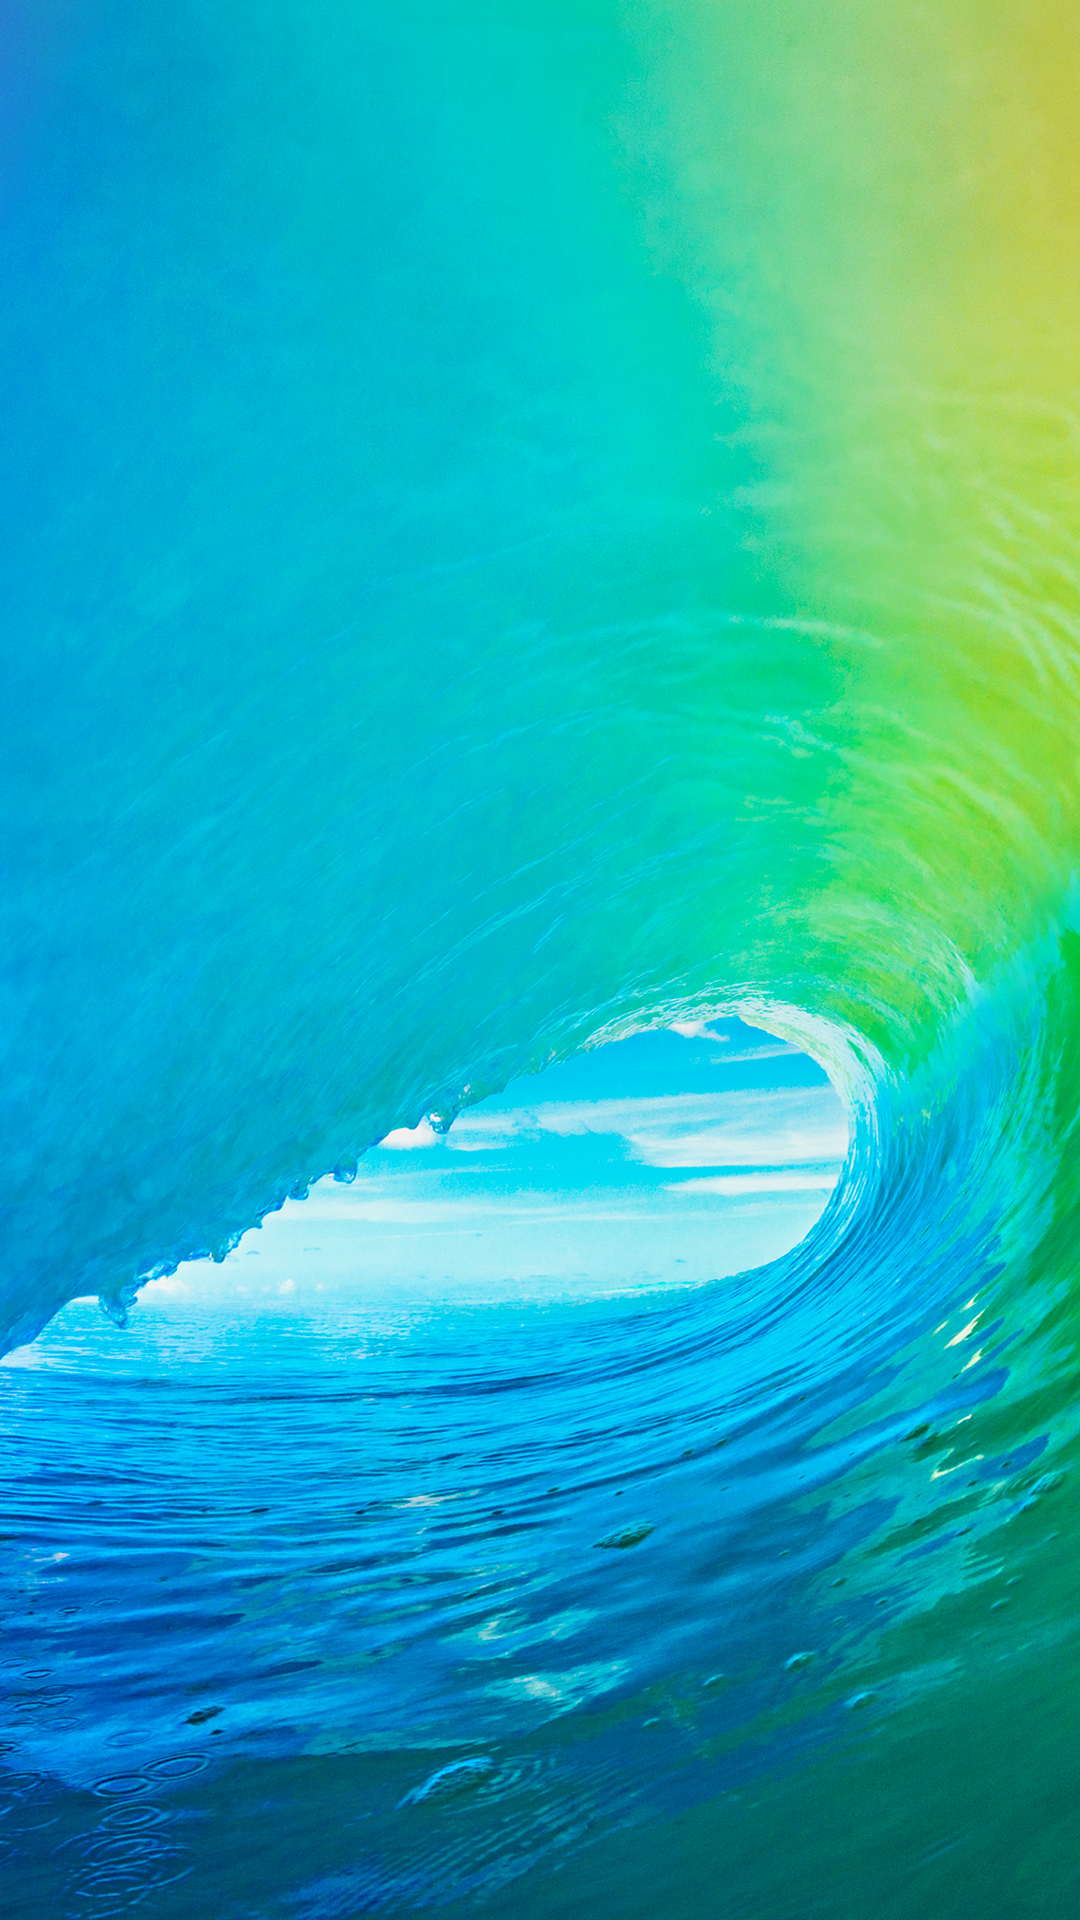 iOS 9 wallpaper MacRumors Forums 1080x1920